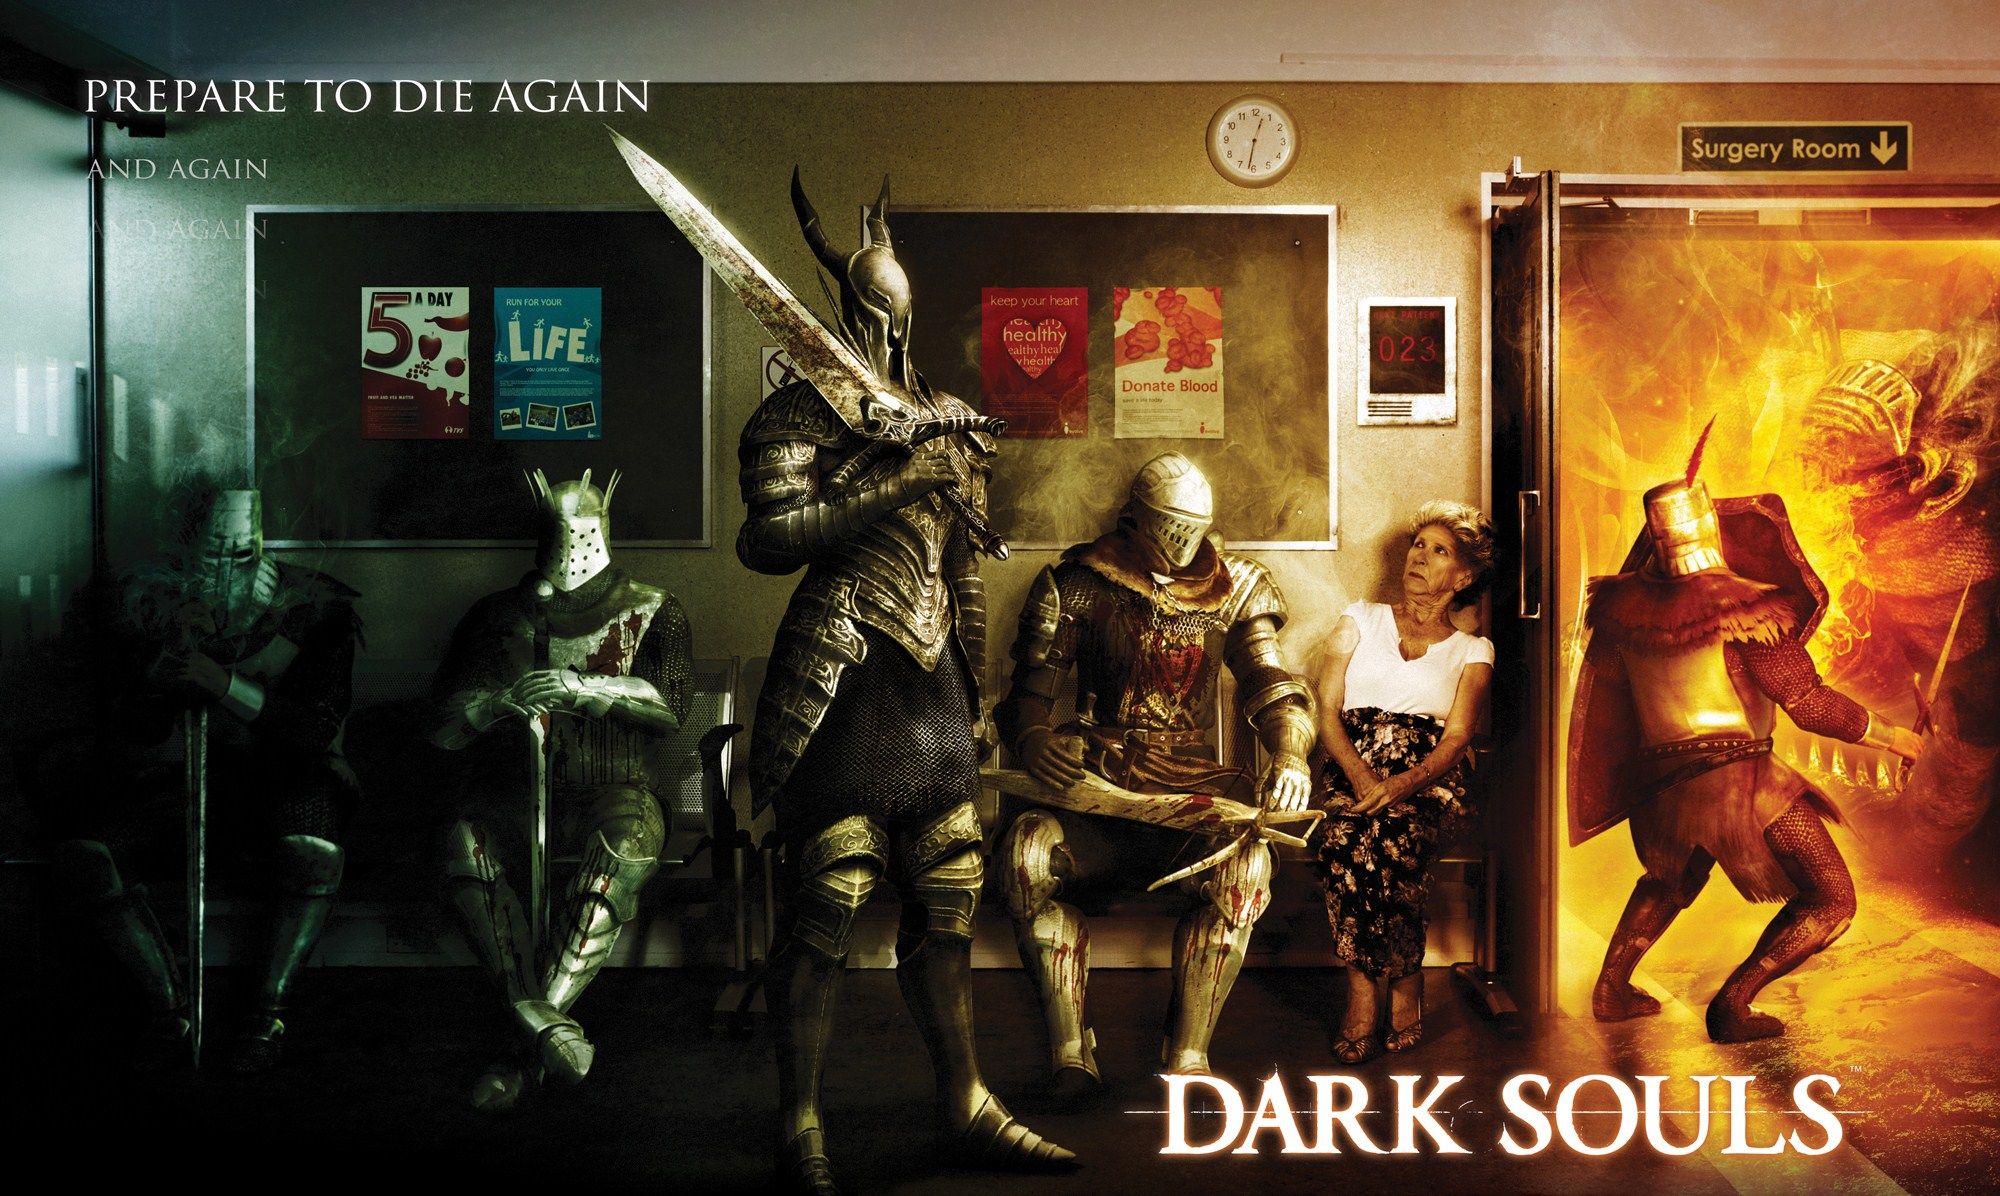 235 Dark Souls HD Wallpapers   Backgrounds - Wallpaper Abyss